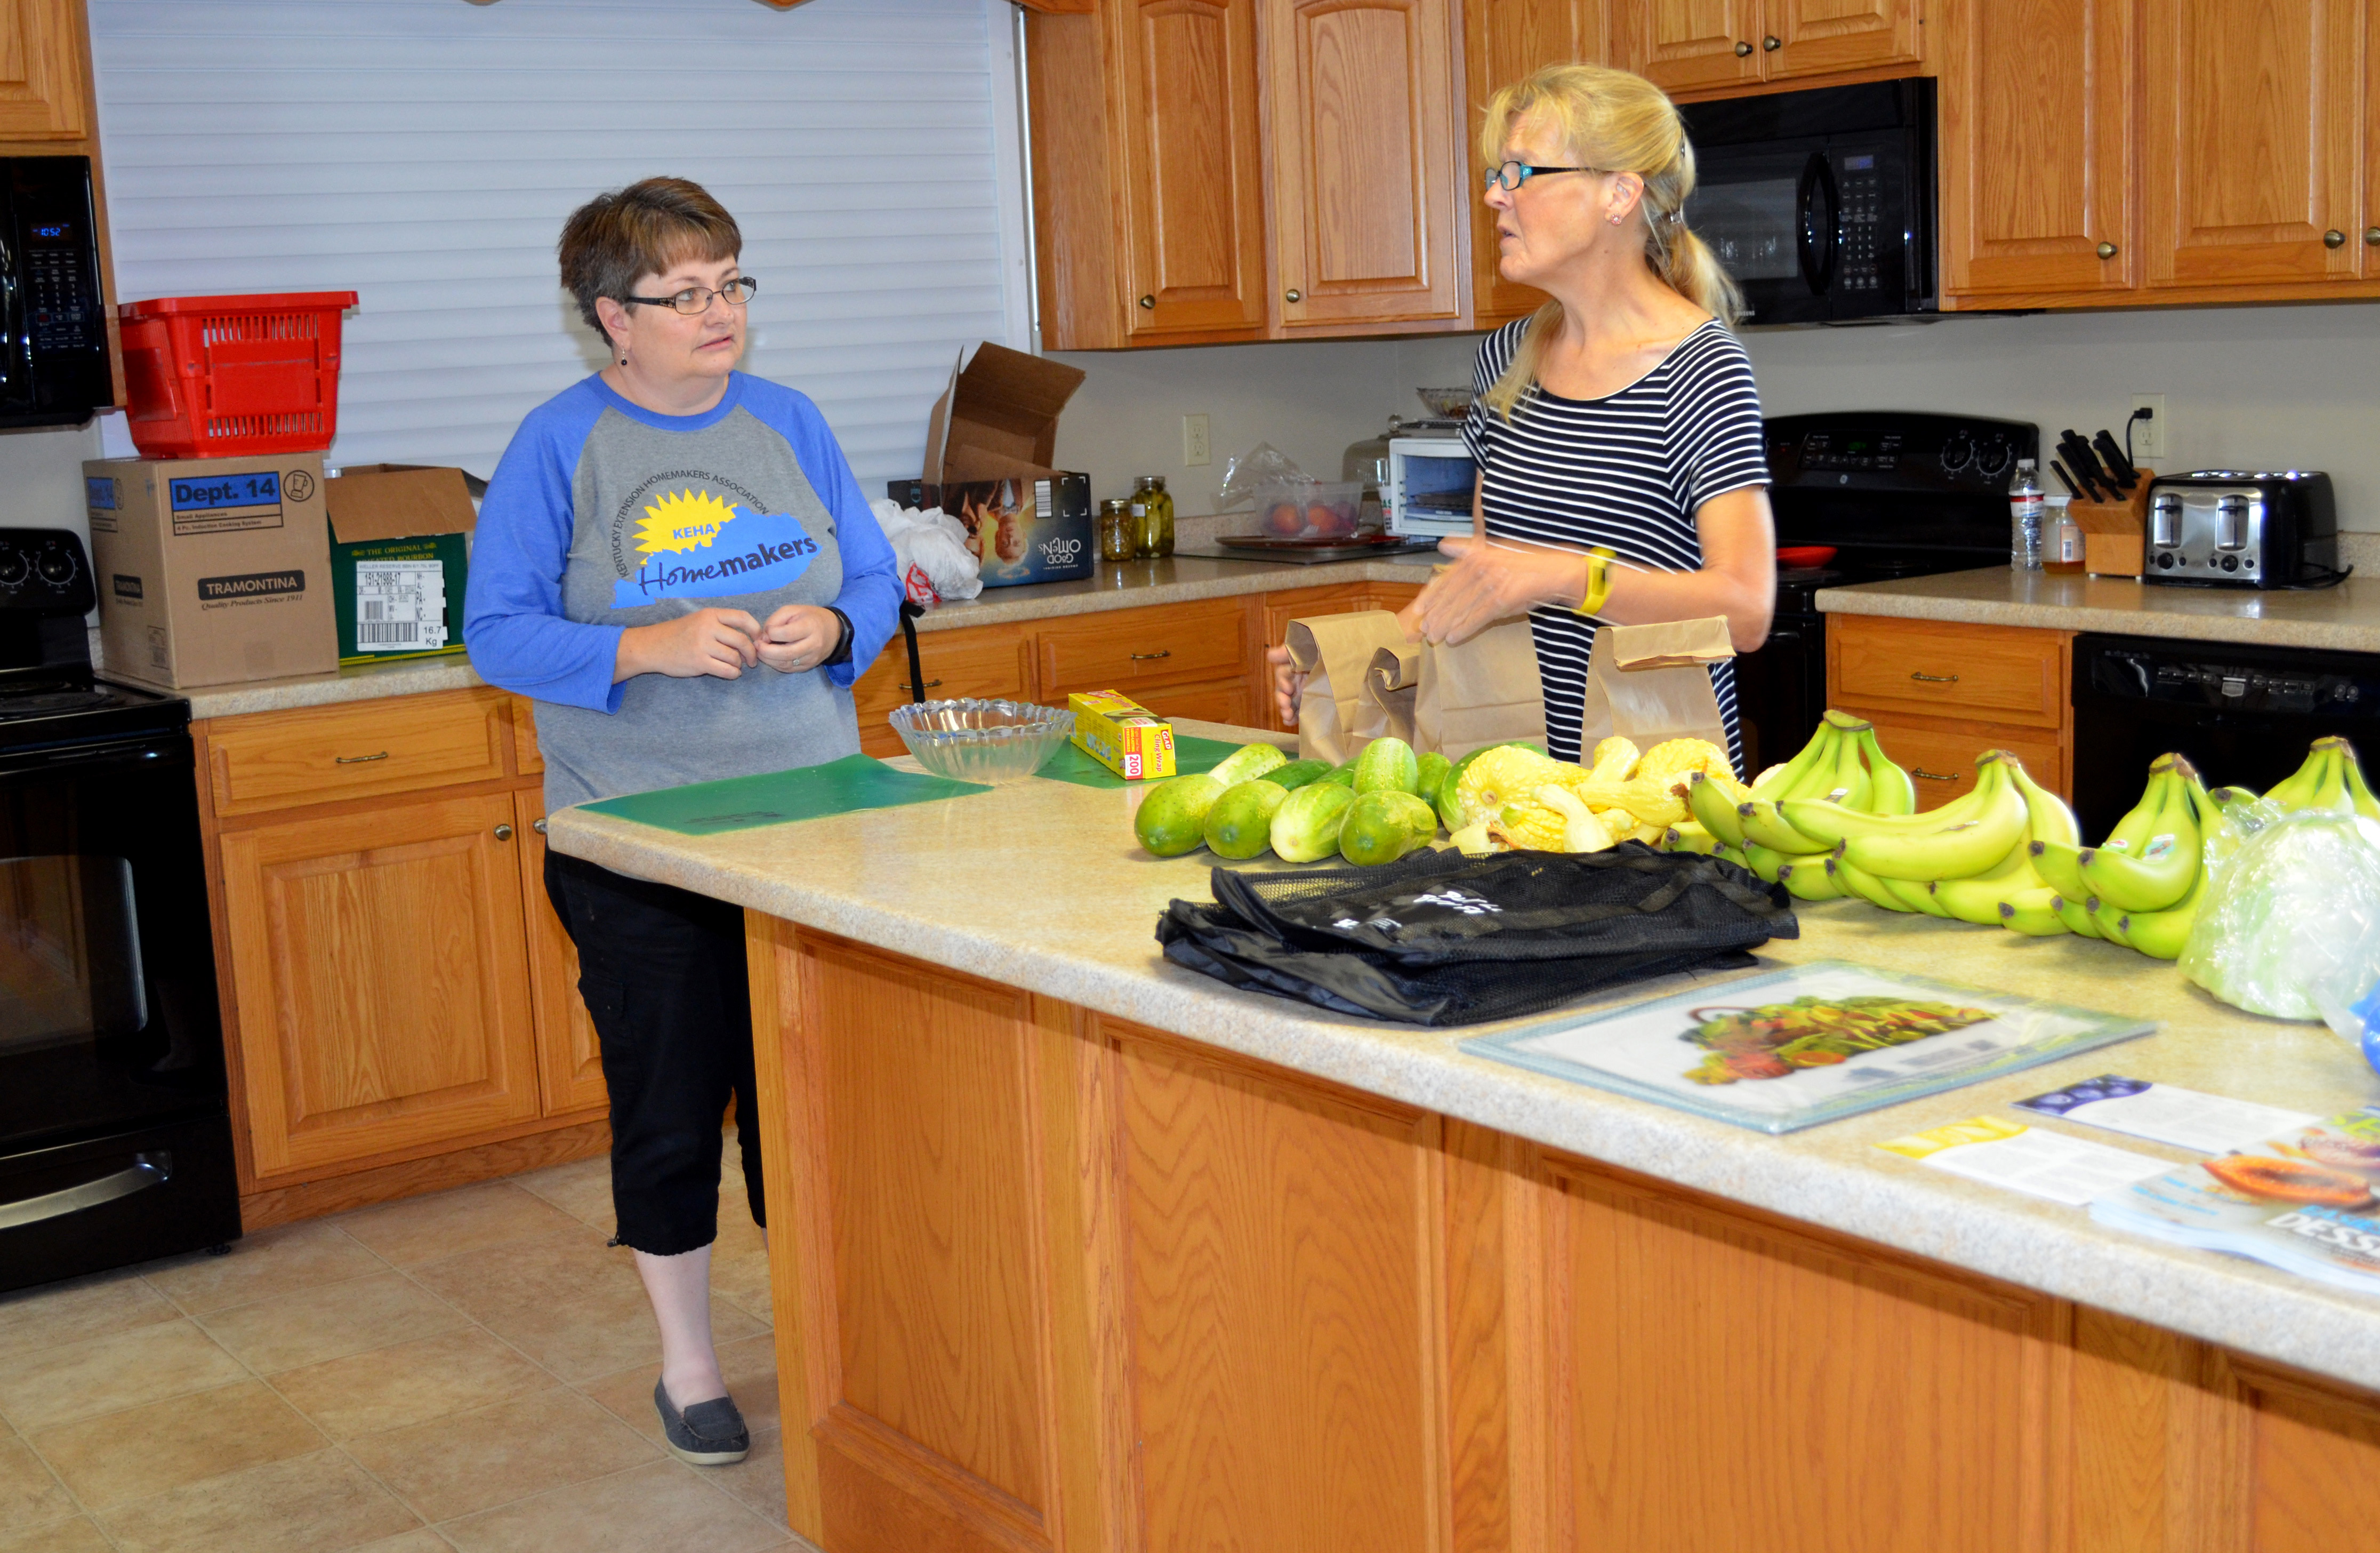 Extension Homemakers help the hungry in their hometown